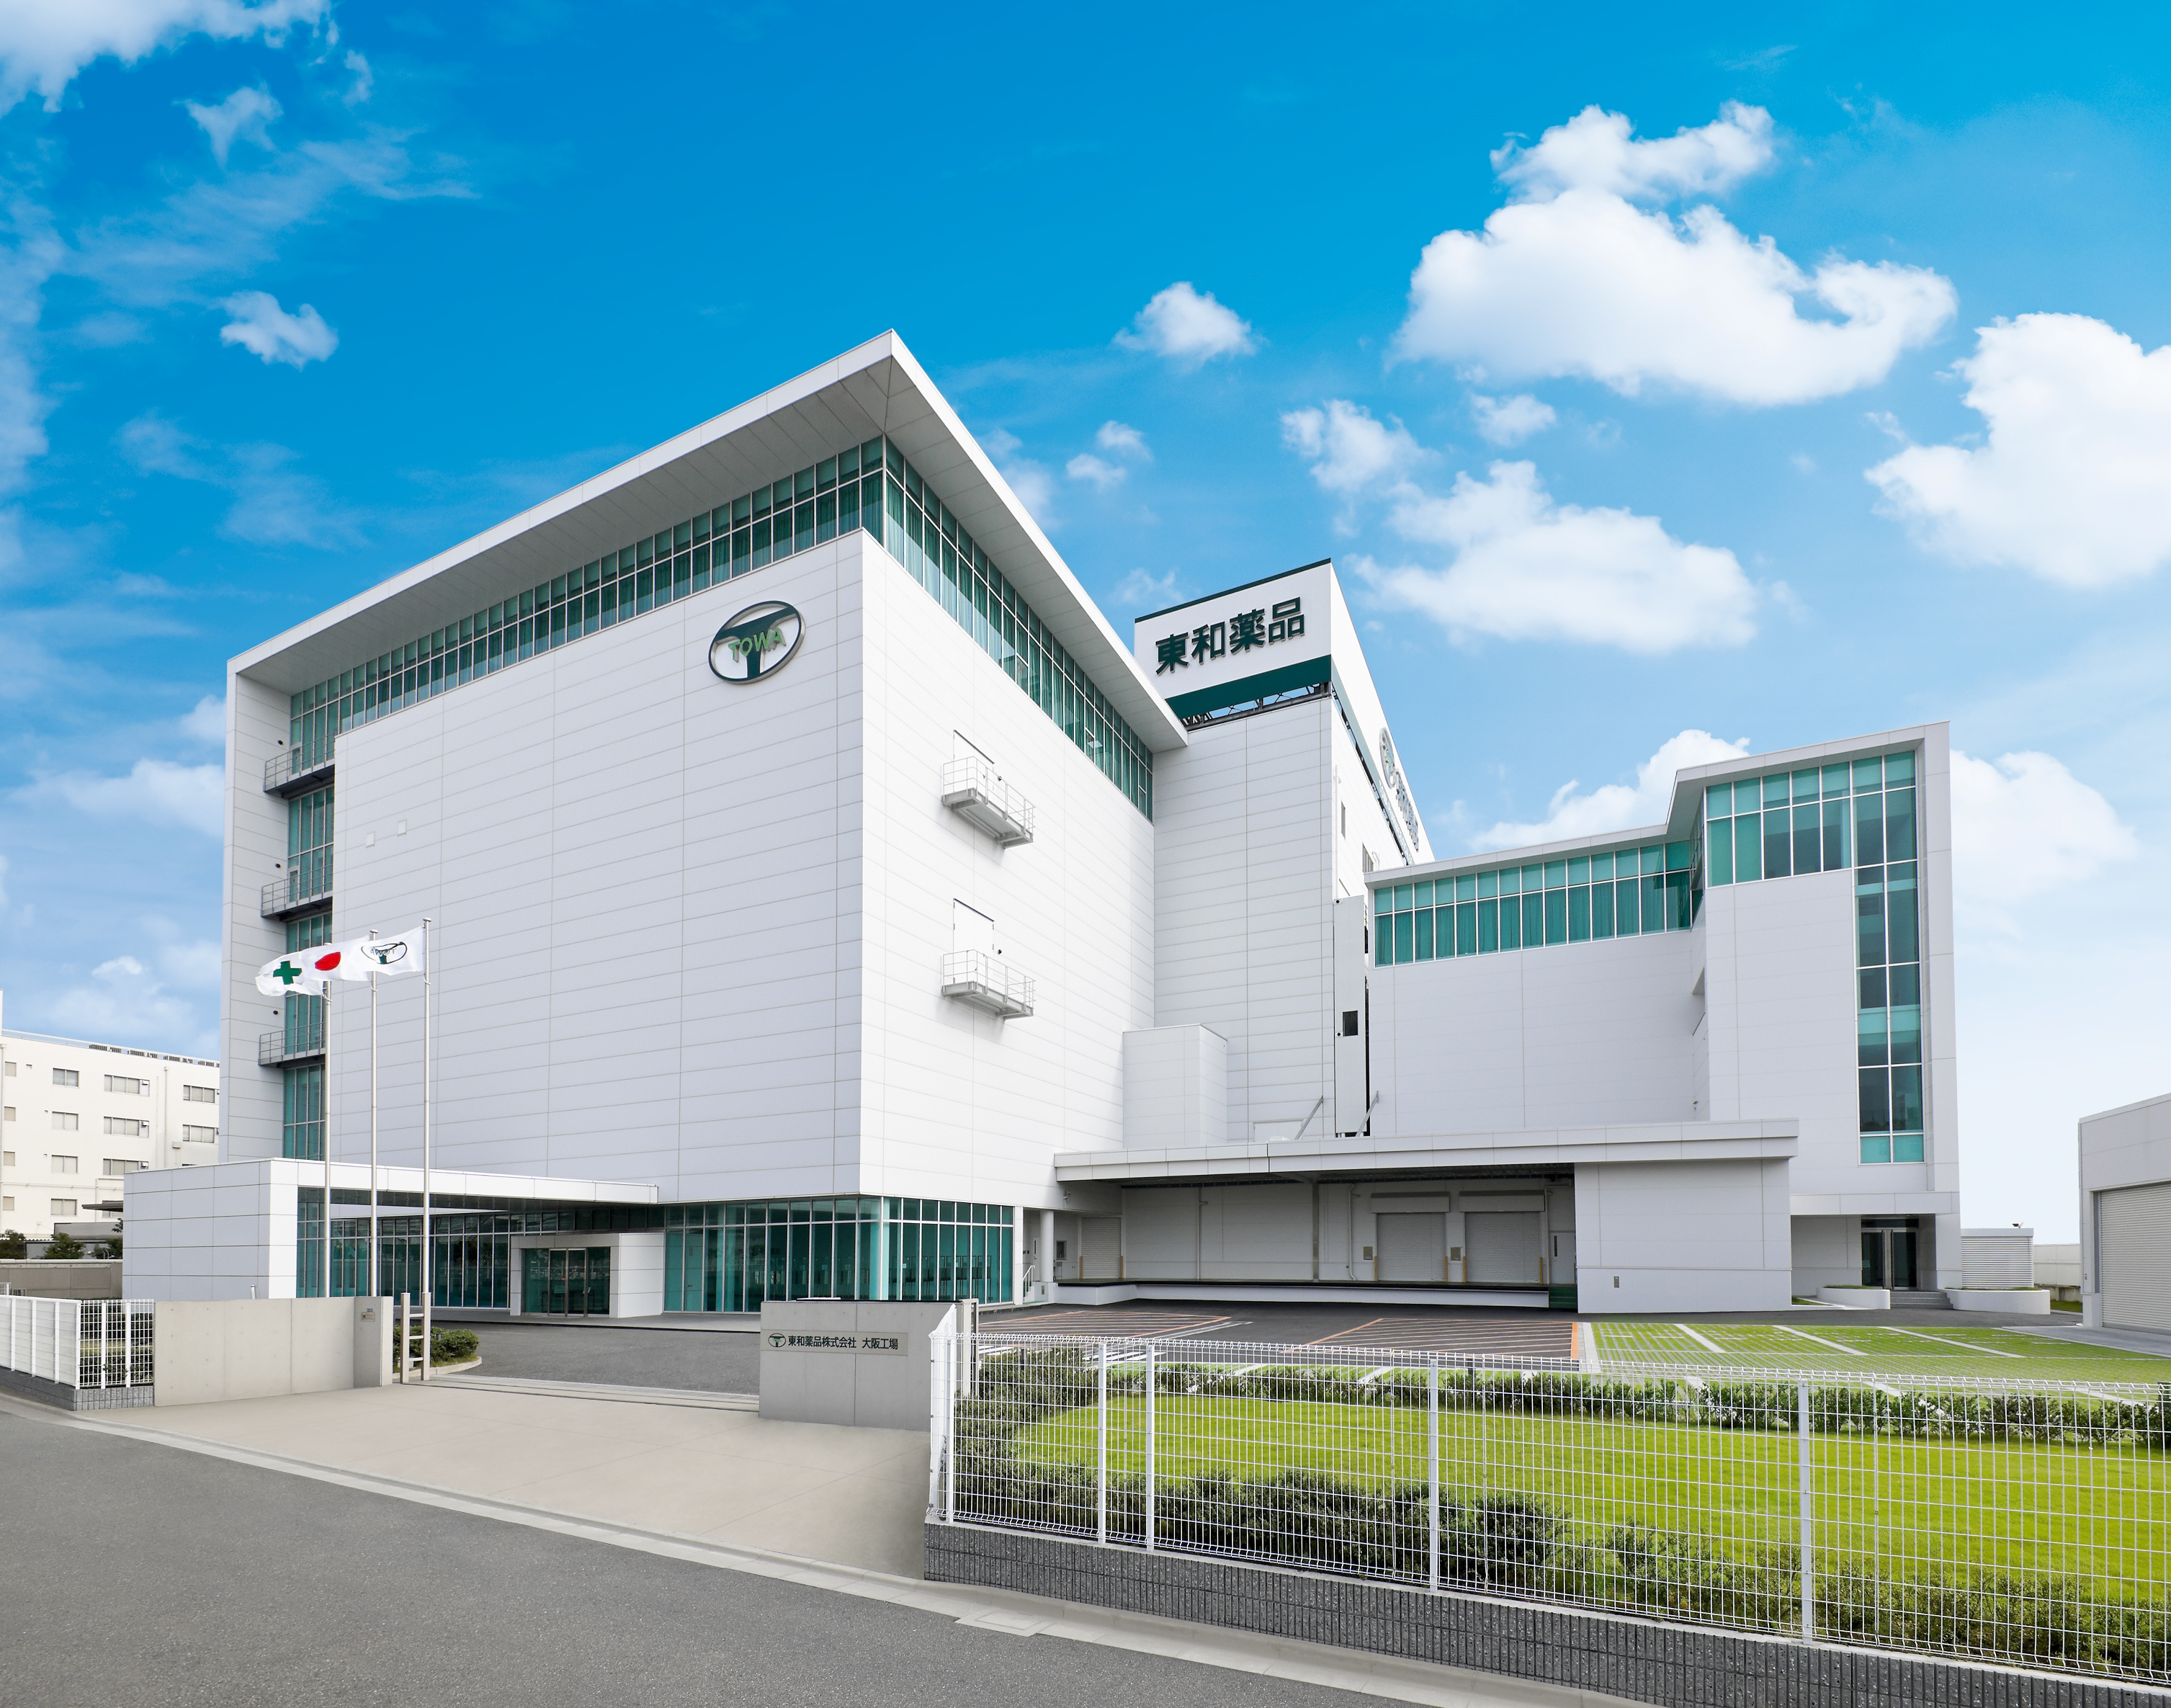 Towa's Osaka Plant, which is open to receive visitors so they can observe Towa's cutting-edge manufacturing facilities for themselves.